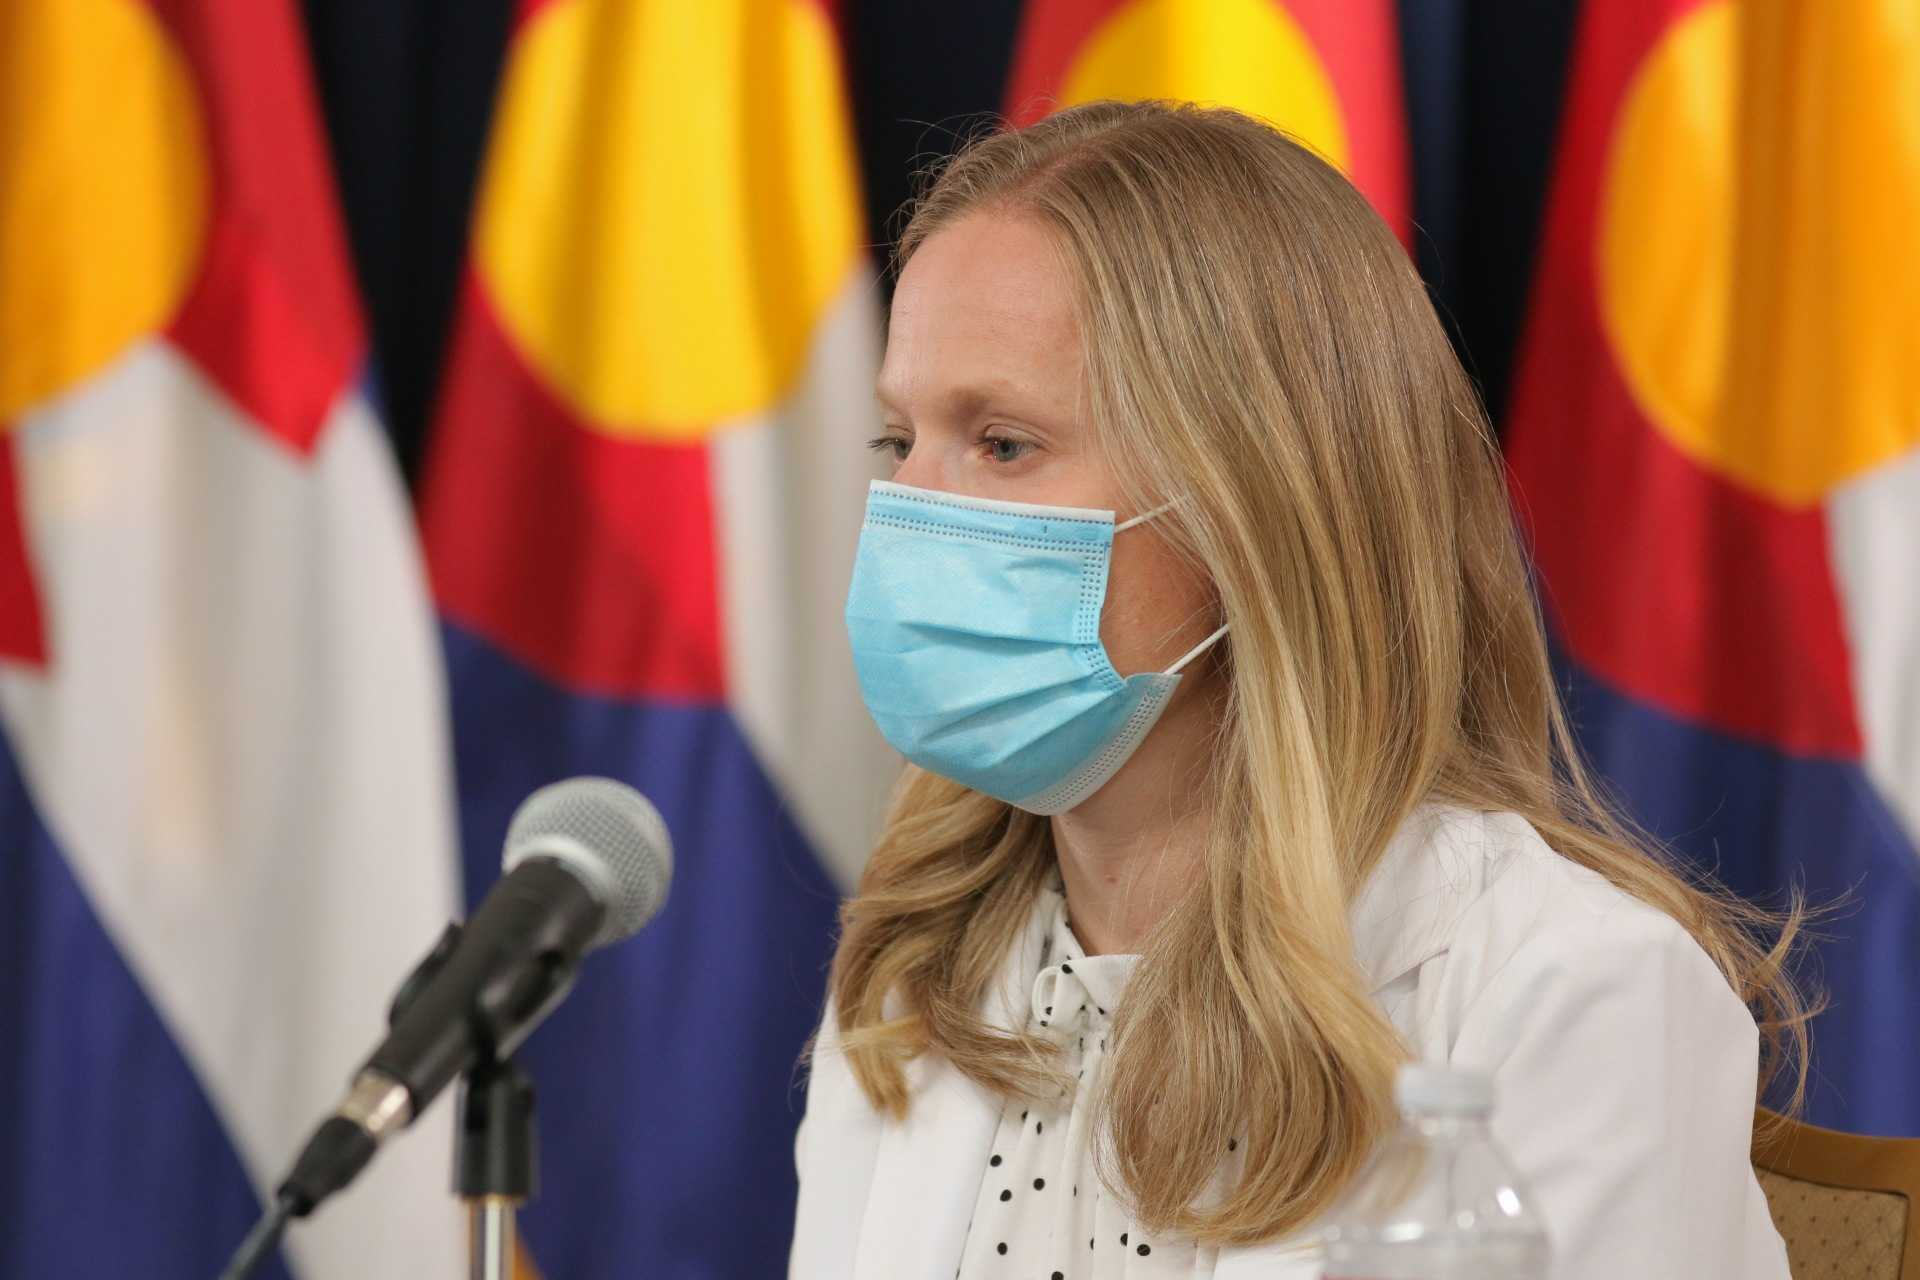 State Epidemiologist Dr. Rachel Herlihy speaks at the press conference where Gov. Jared Polis announced a statewide mask order on July 16, 2020.